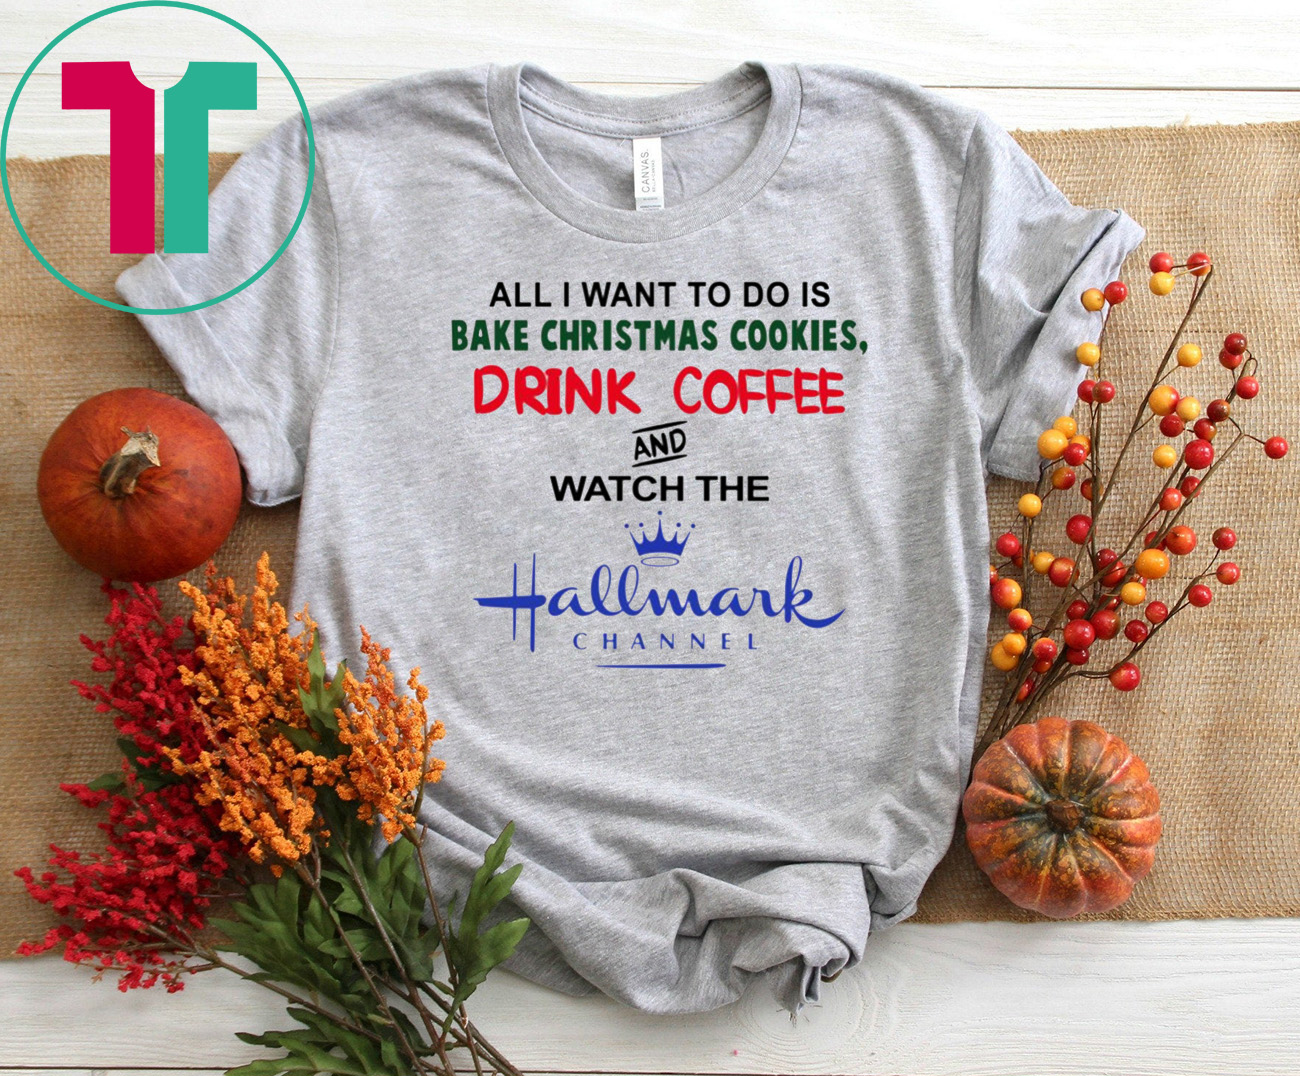 Christmas Cookies Hallmark.All I Want To Do Is Bake Christmas Cookies Drink Beer And Watch The Hallmark Channel T Shirt Reviewshirts Office